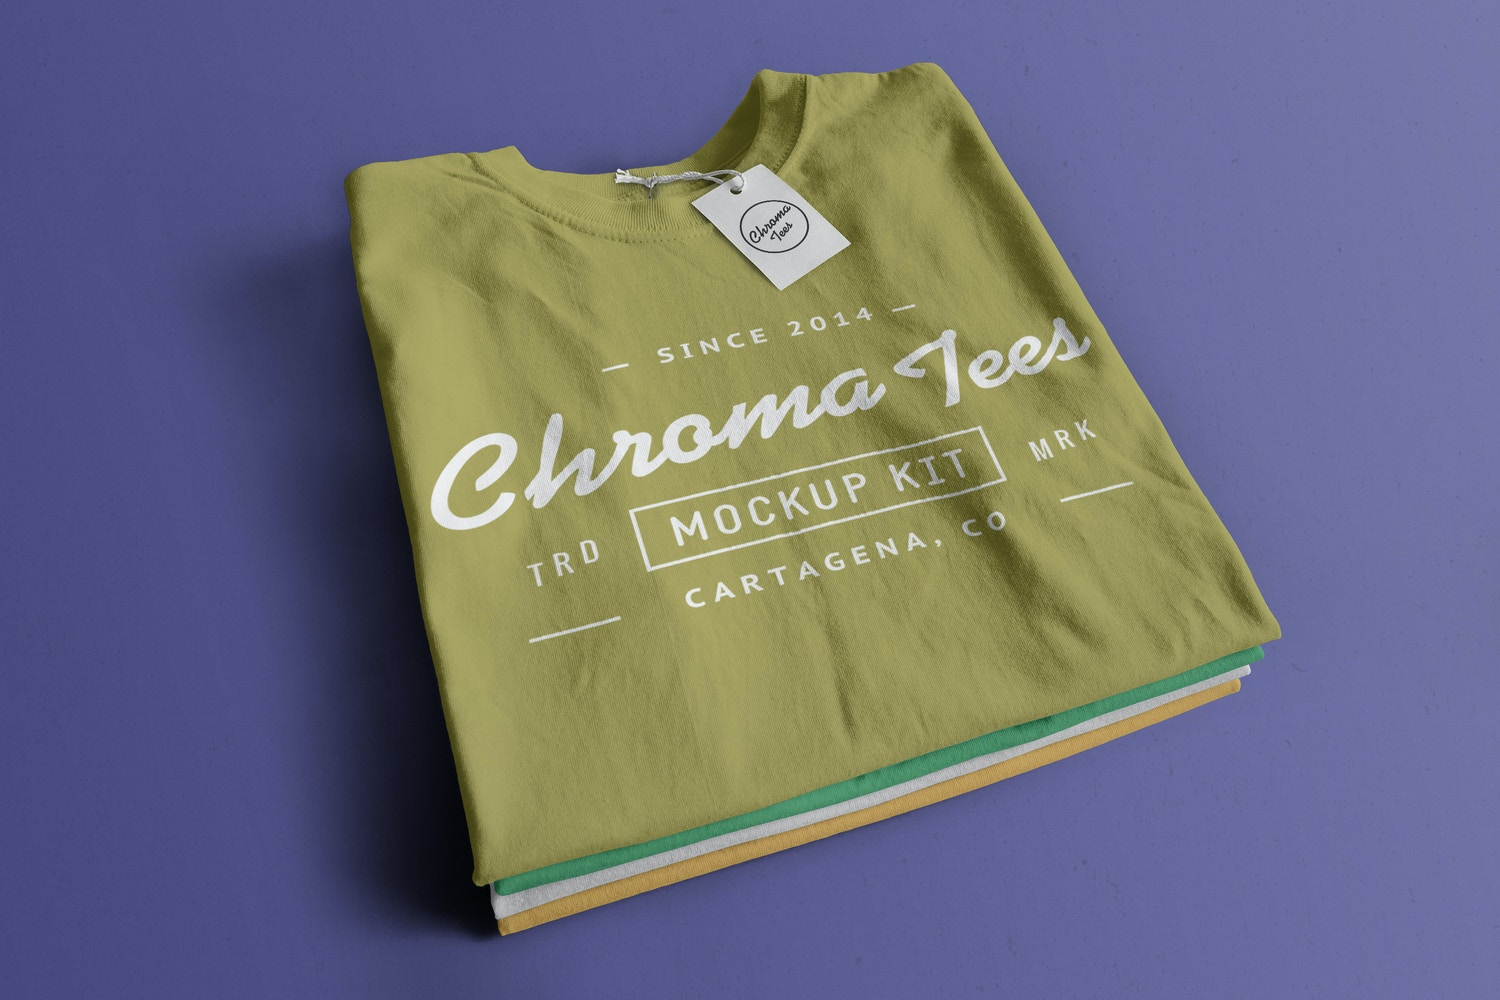 Stack of Folded T-Shirts Mockup 01 by Antonio Padilla on Original Mockups